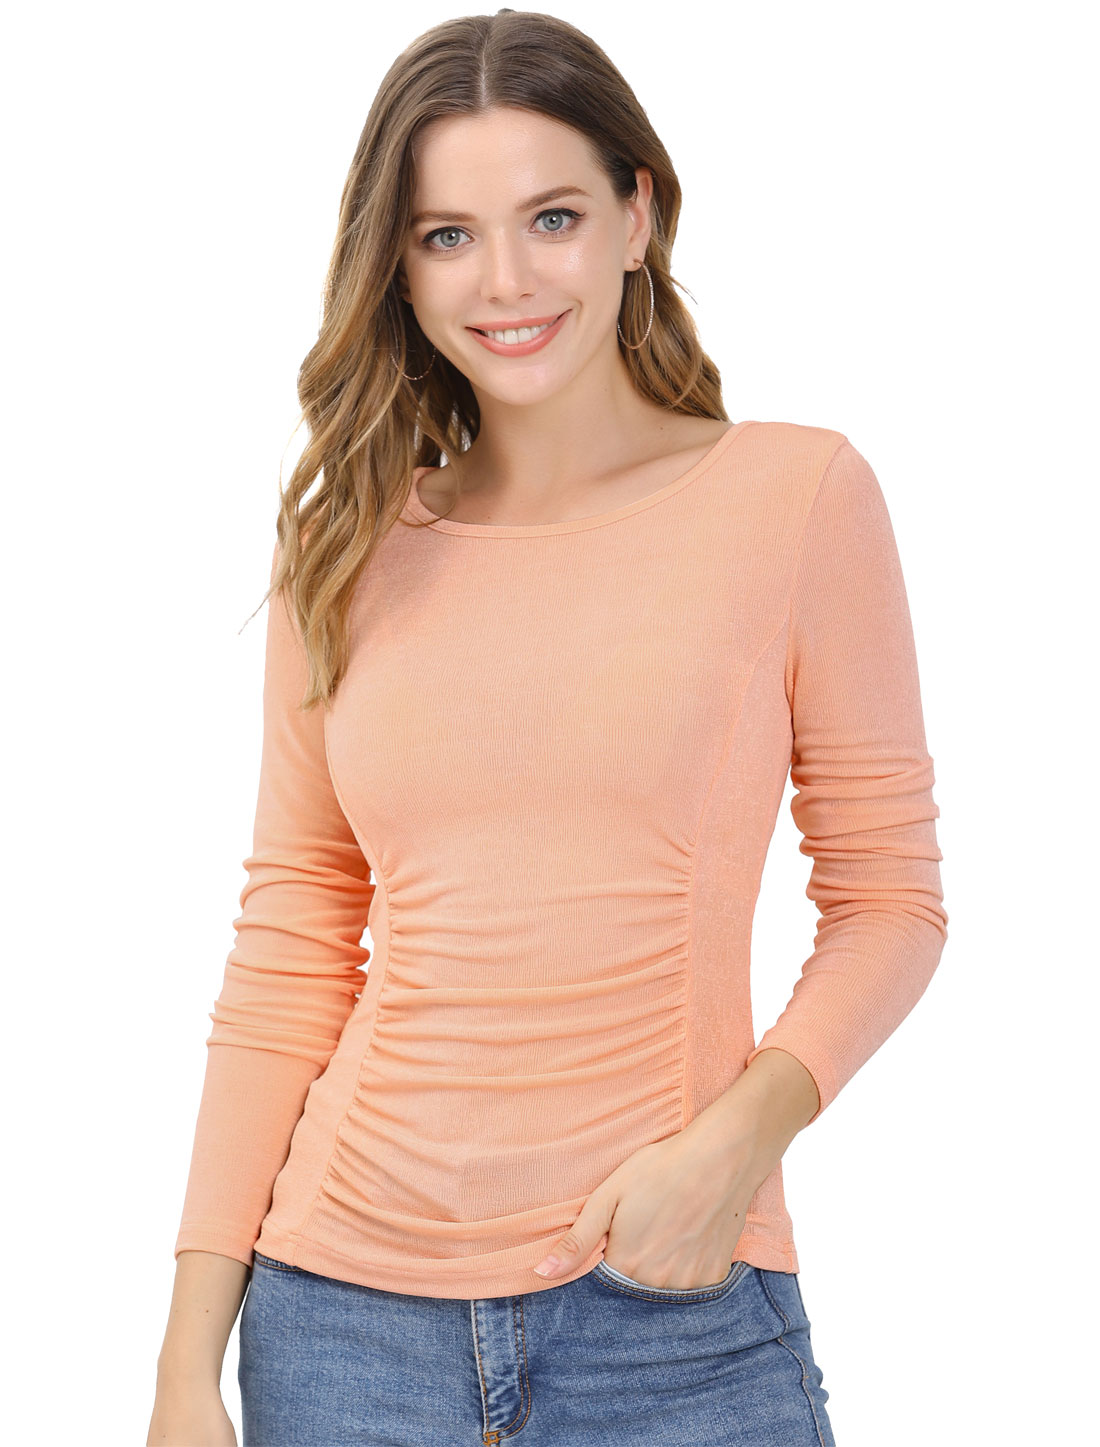 Allegra K Women Ruched Crew Neck Stretchy Slim Fit Shirt Tops Pink XS